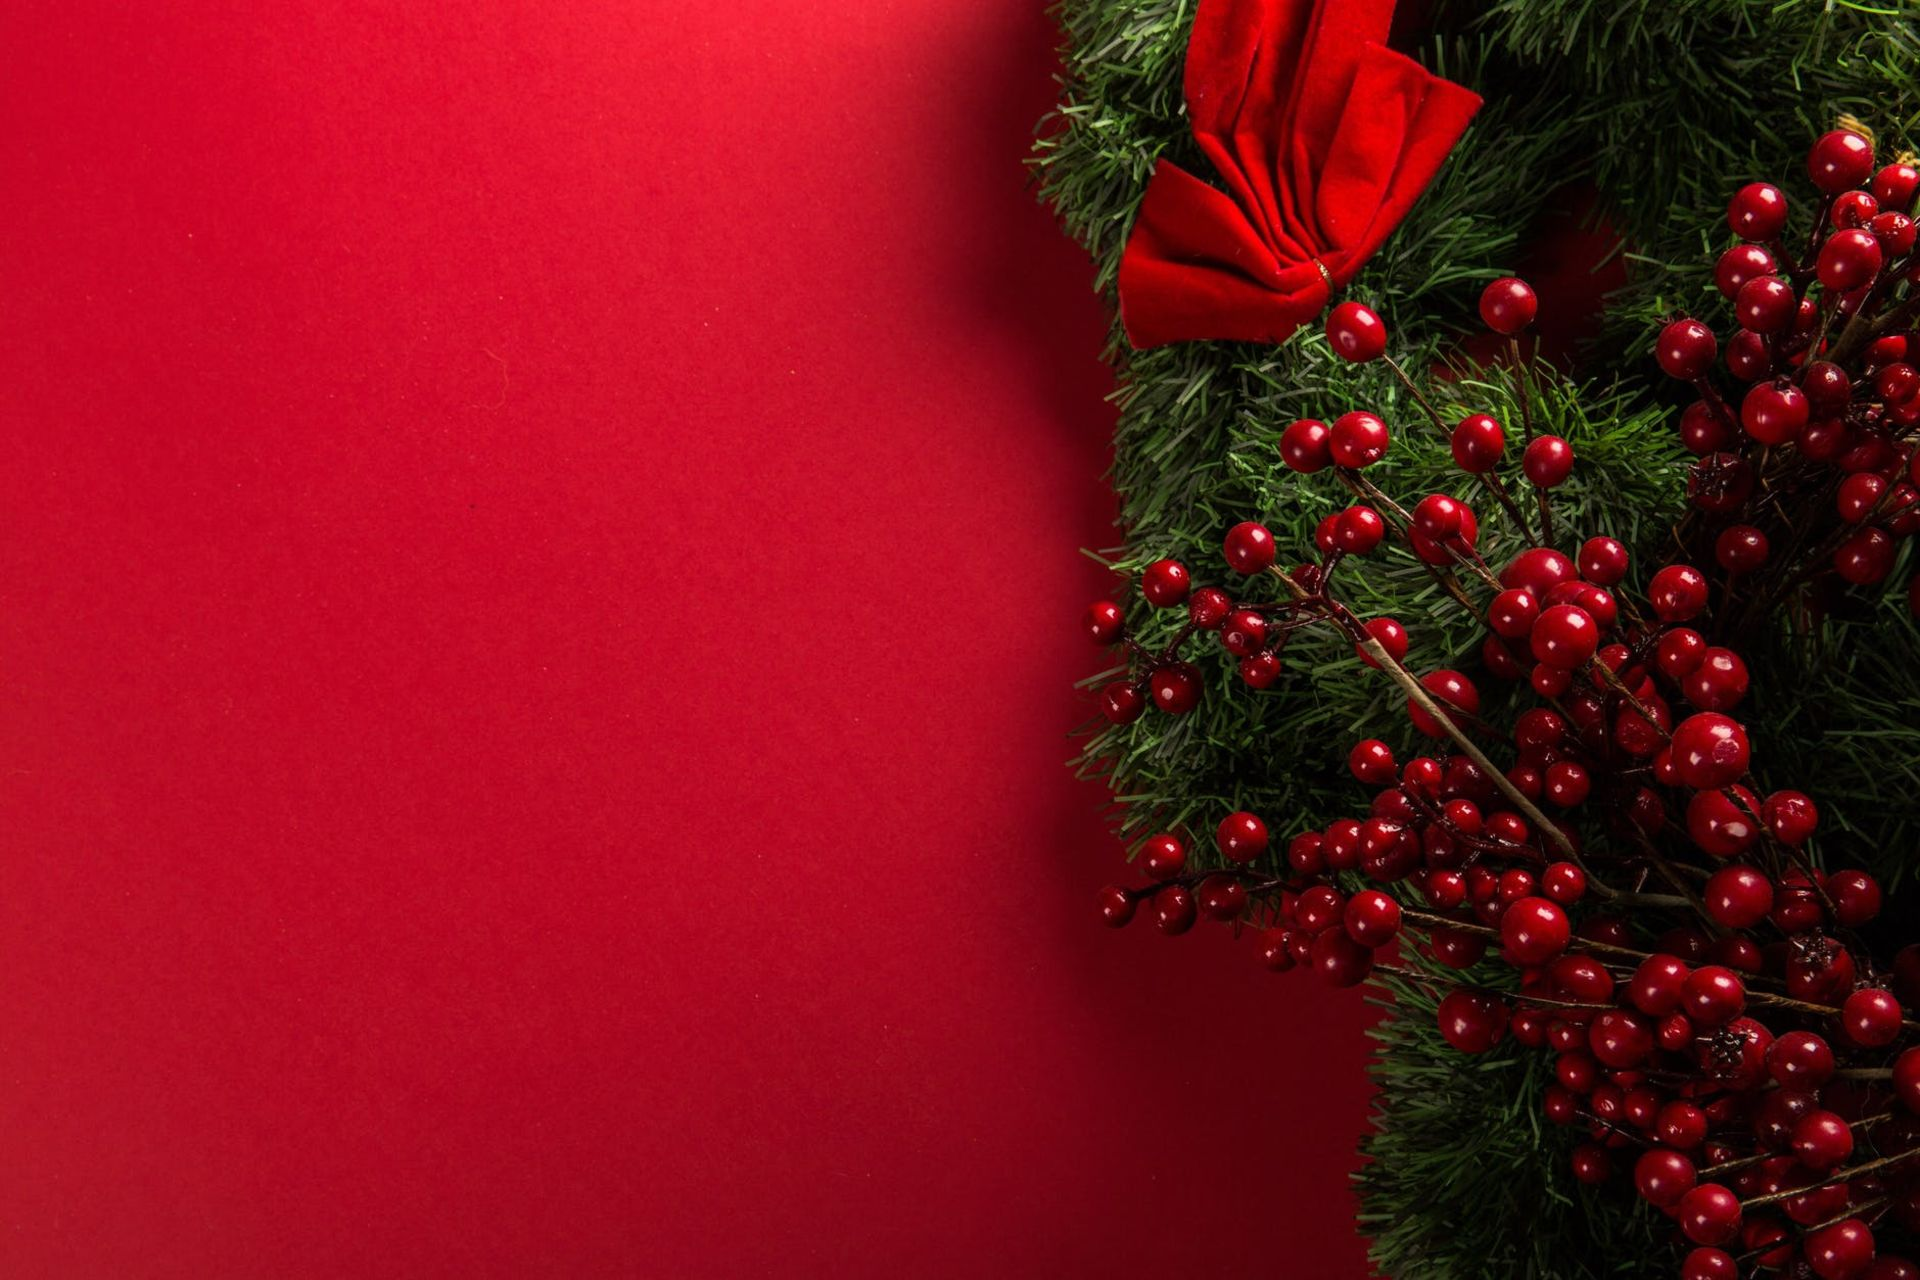 3 Simple Ways to Decorate For The Holidays